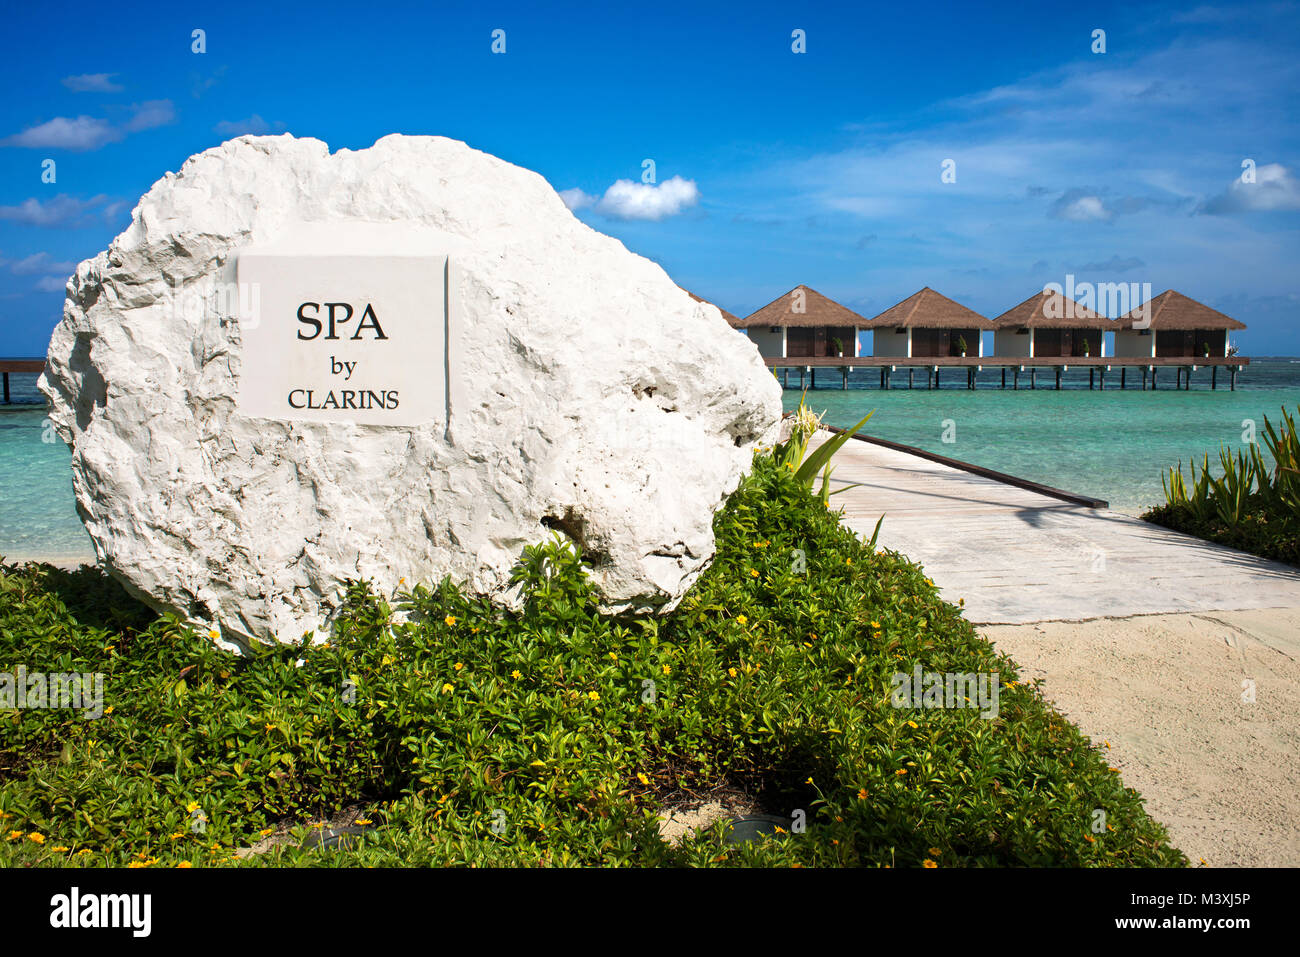 The Residence Hotel and Resort spa by Clarins, Gaafu Alifu Atoll. Maldives Islands. - Stock Image